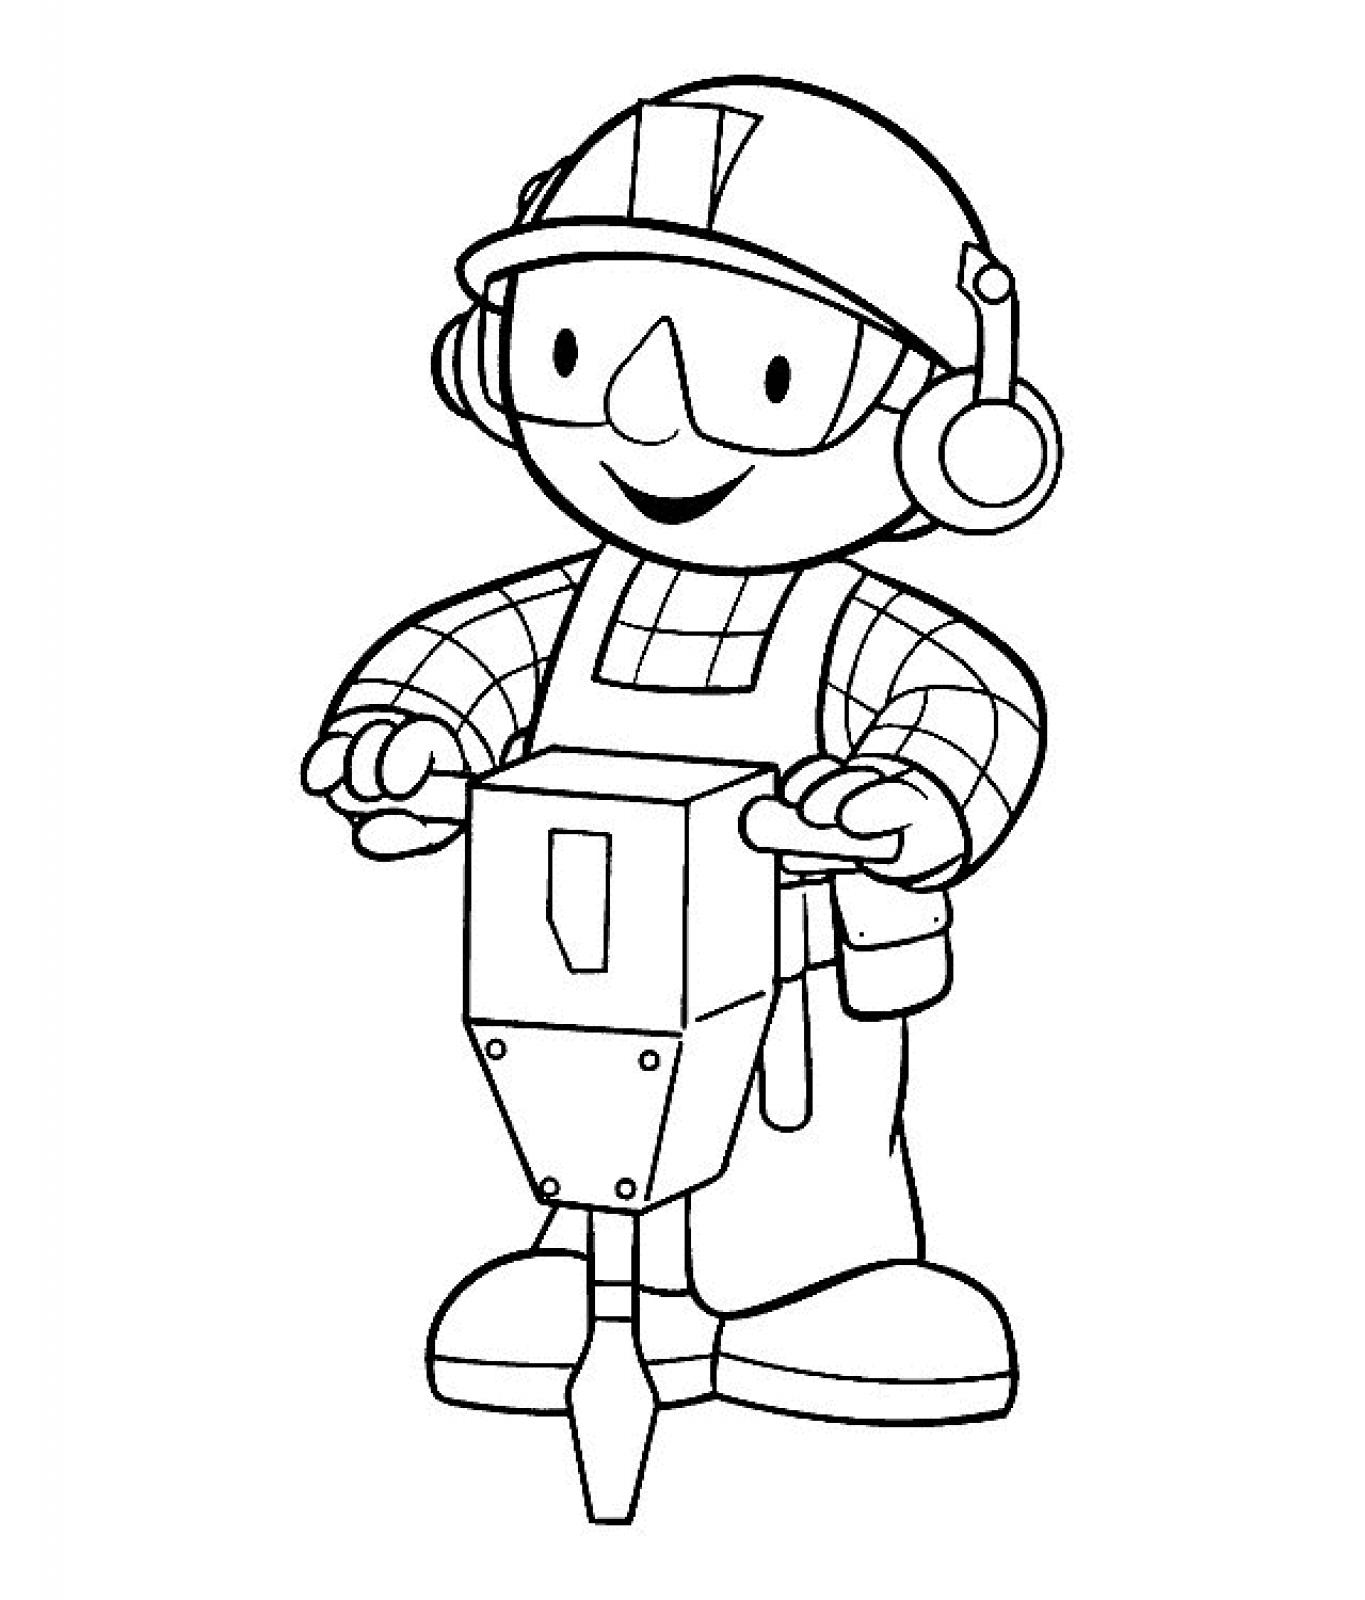 Best Coloring Pages Site Bob And Friends Coloring Pages